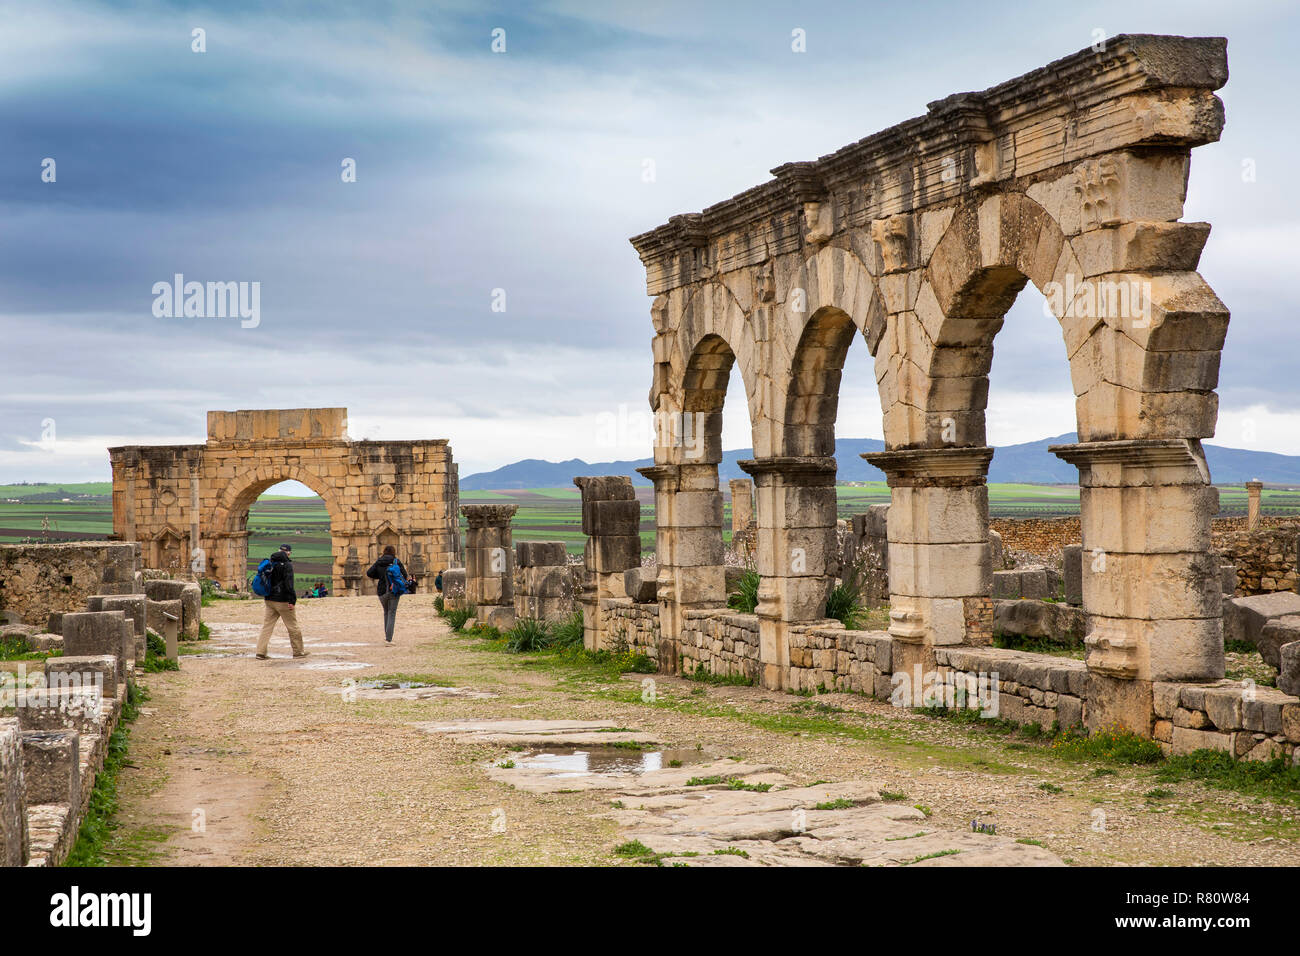 Morocco, Meknes, Volubilis Roman site, three arches on Decumanus Maximus, to Triumphal Arch of Caracalla Stock Photo